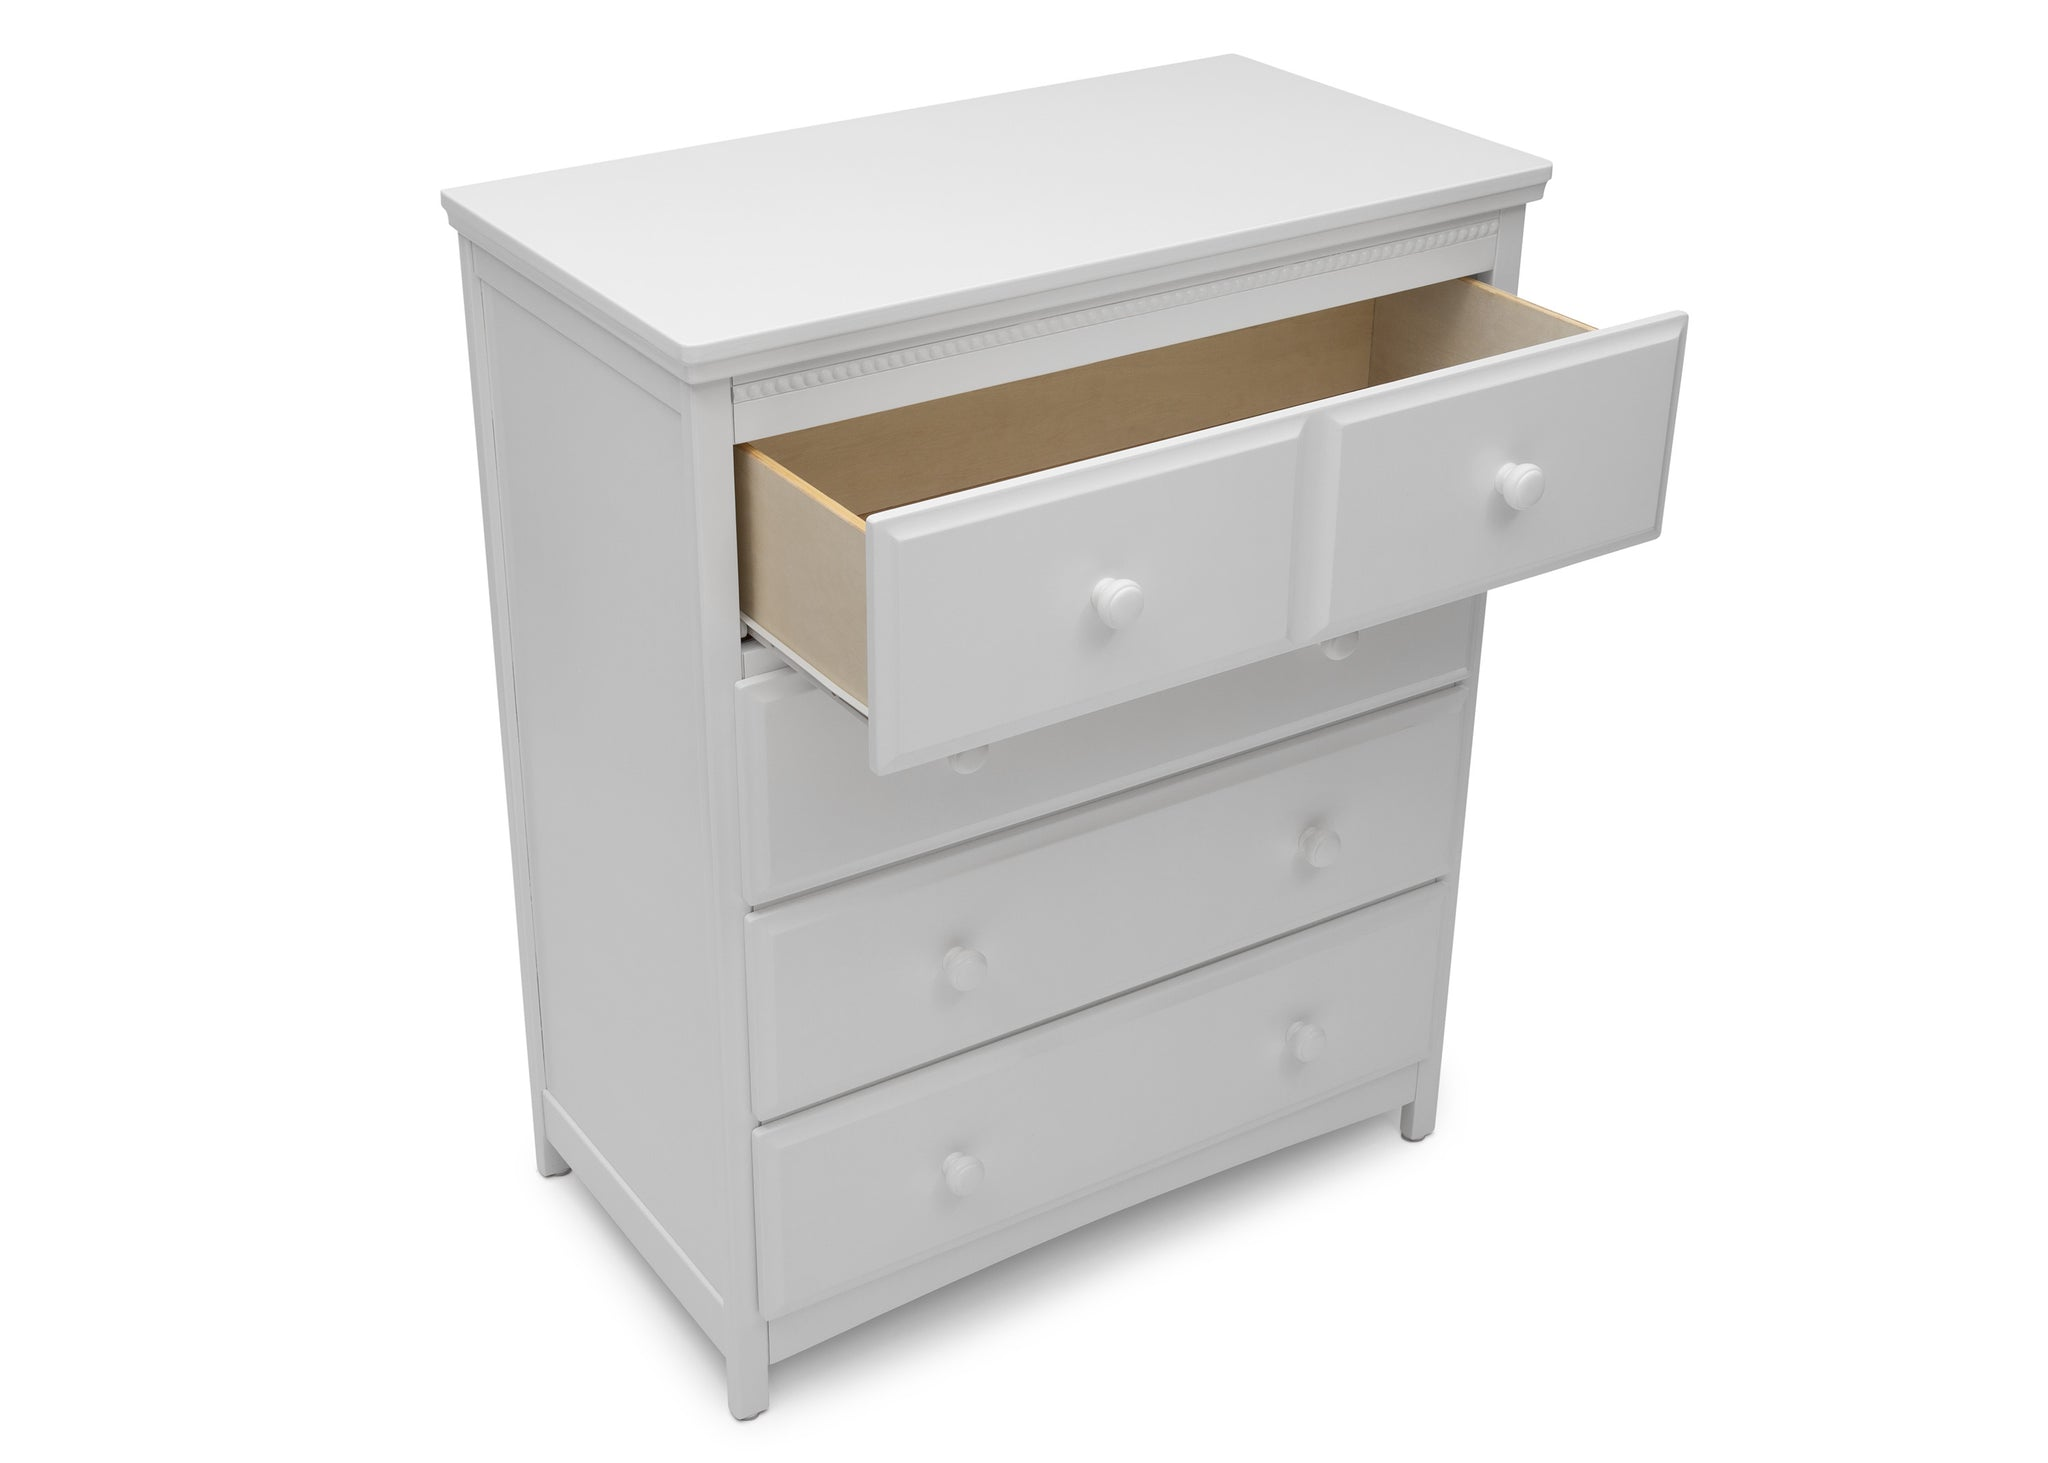 Delta Children Bianca White (130) Emerson 4 Drawer Chest, Open Drawer View